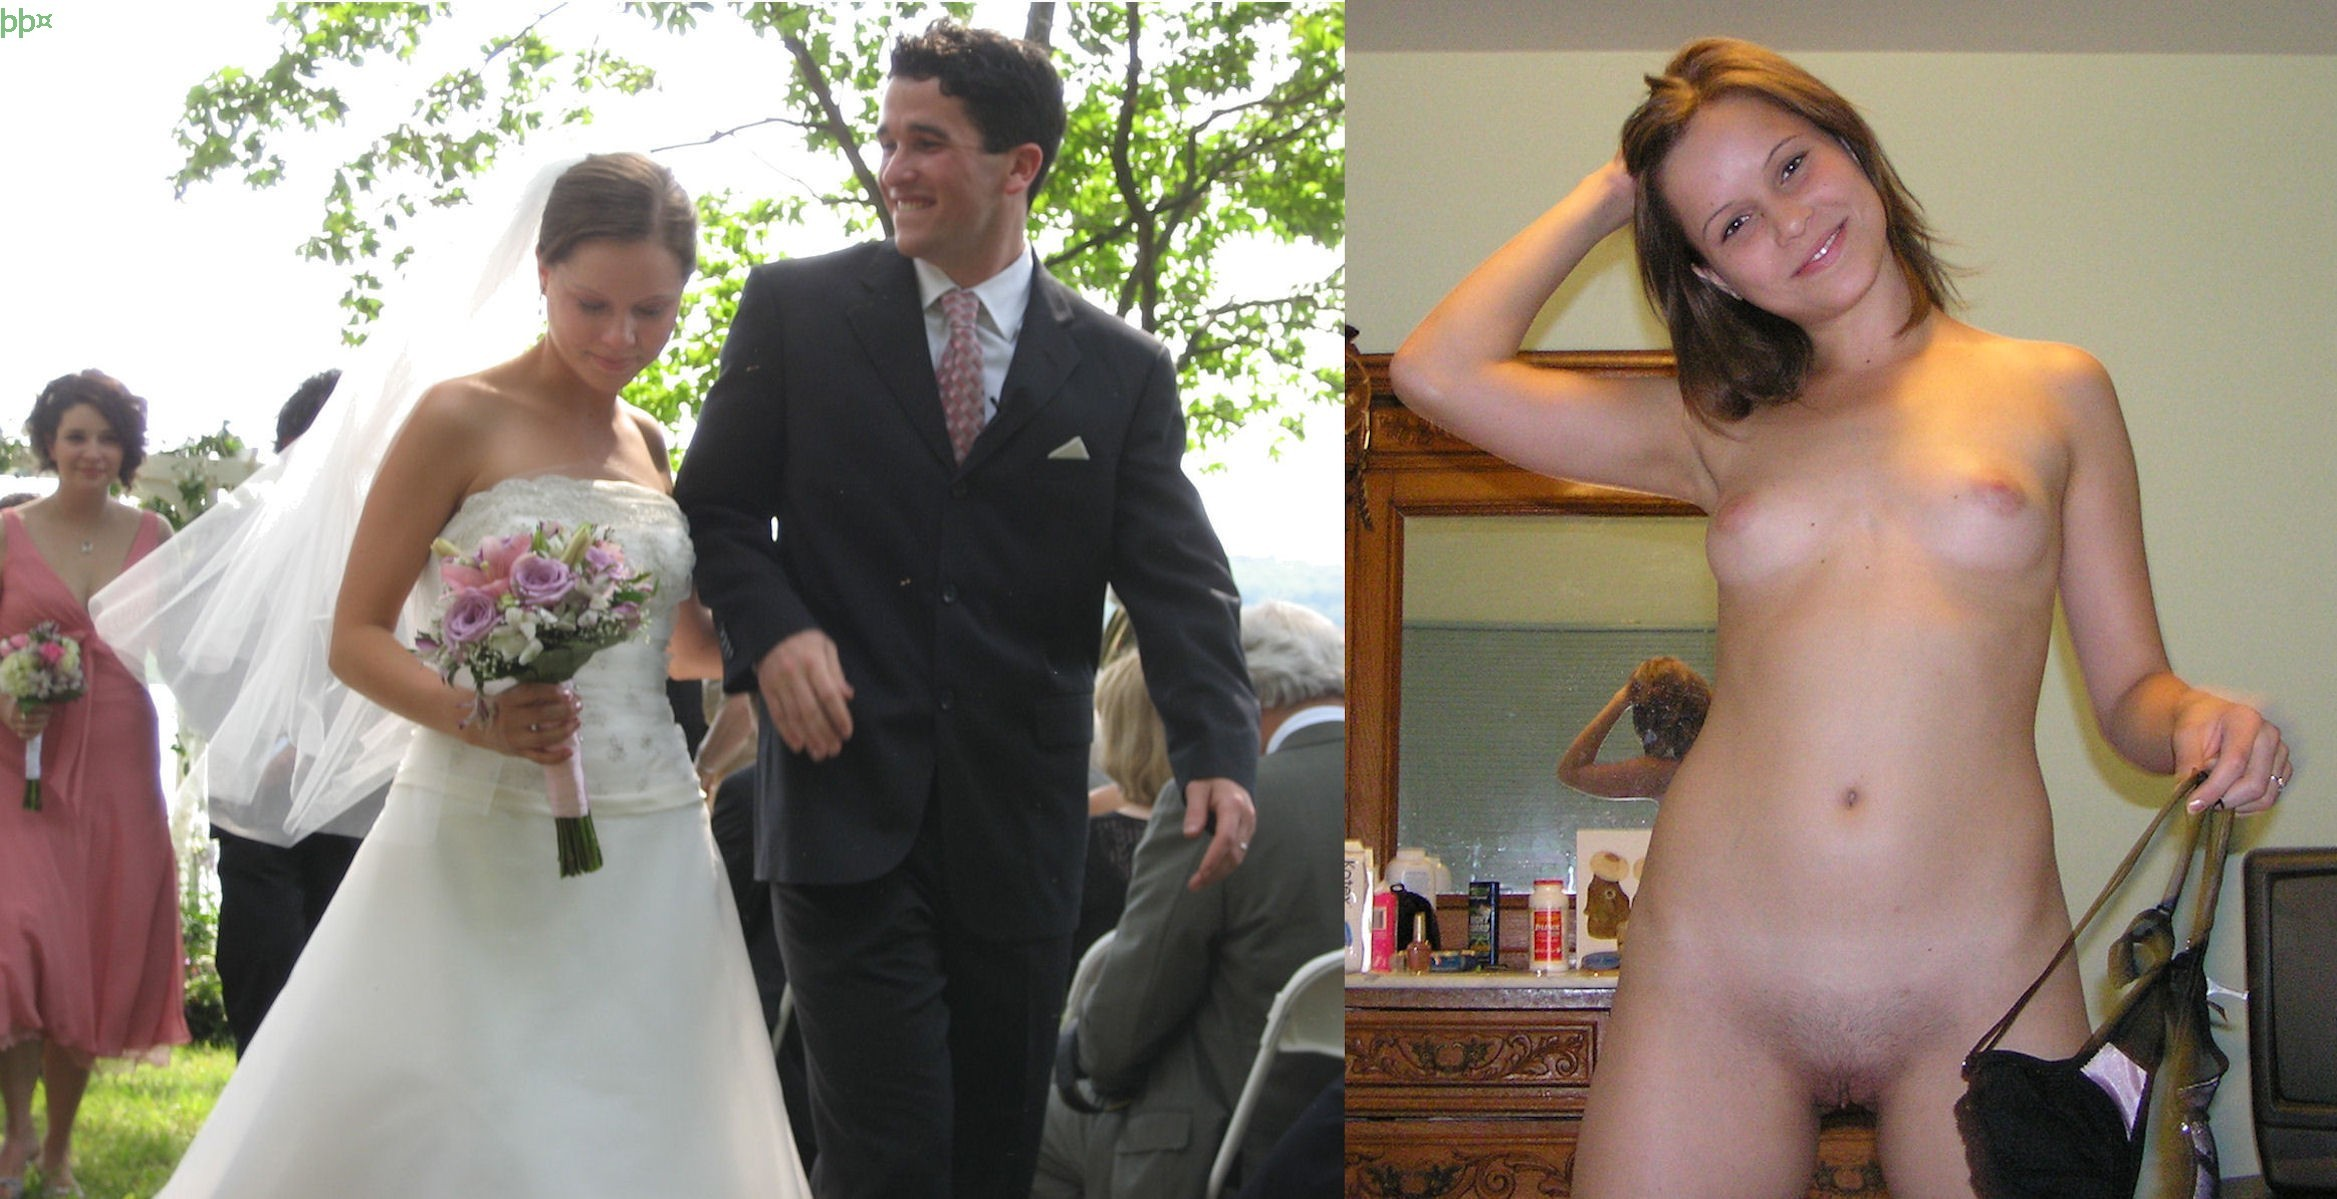 invited-to-nude-wedding